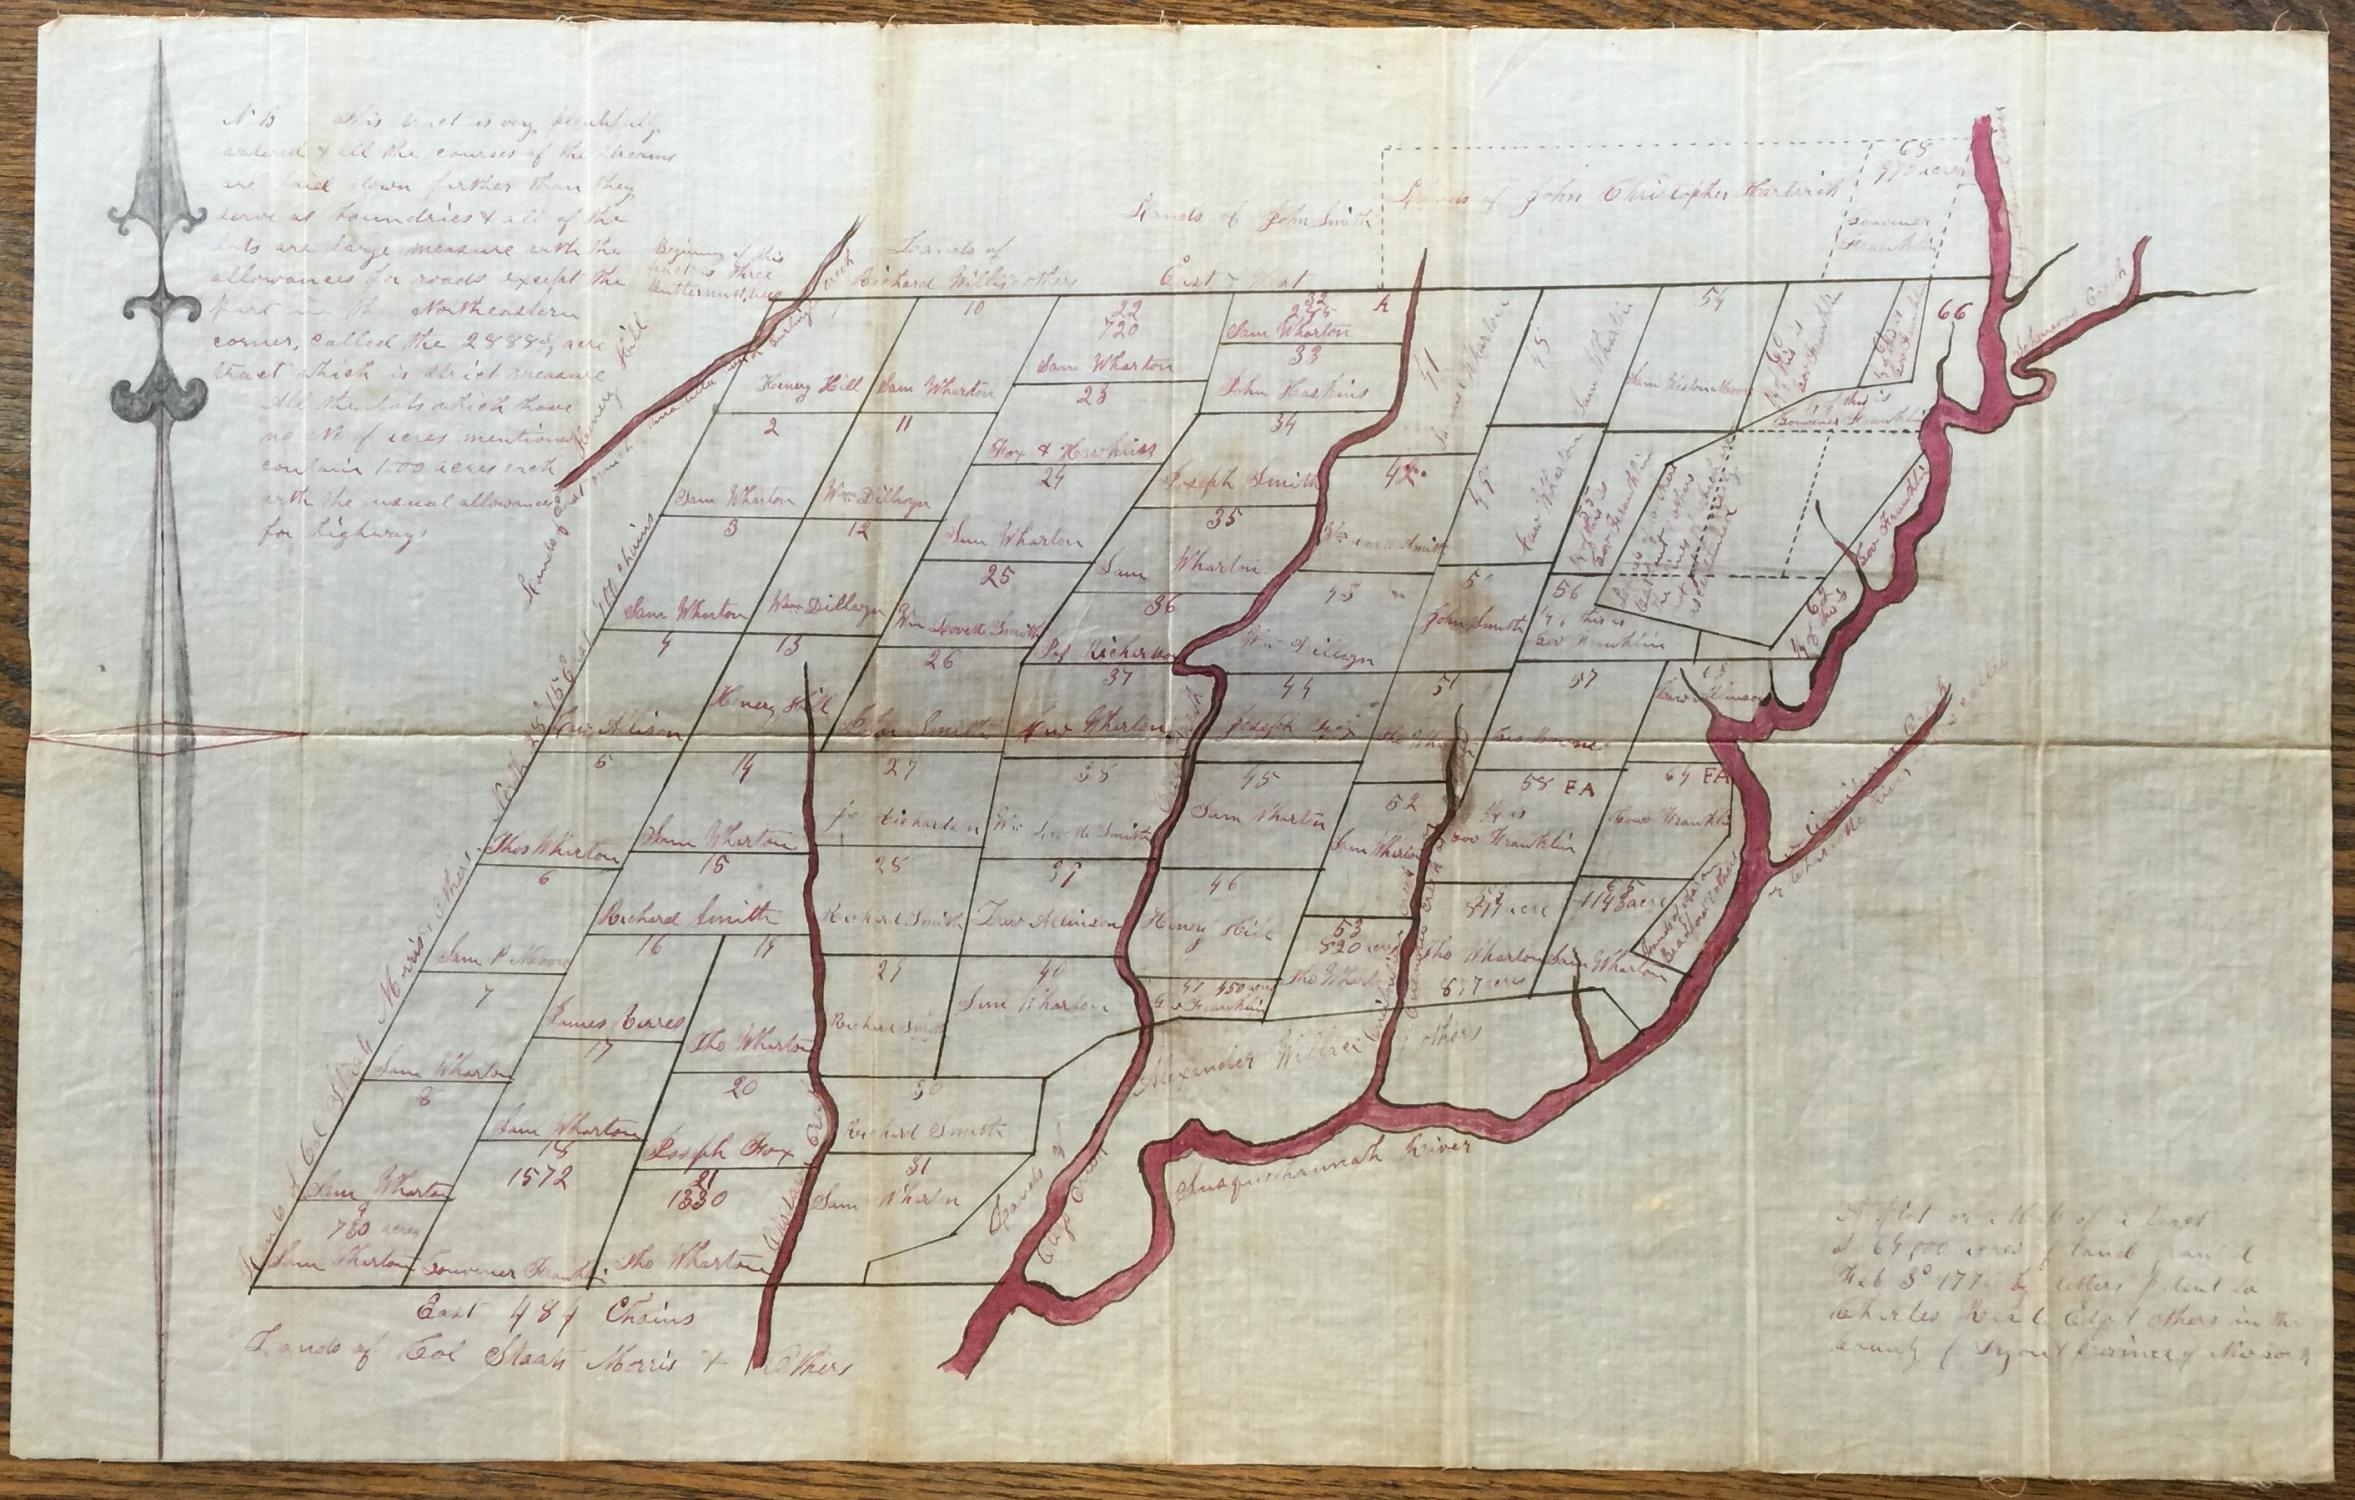 A PLOT OR MAP OF A TRACT OF 69,000 ACRES OF LAND GRANTED FEB. 3RD, 1770 BY LETTERS PATENT TO ...